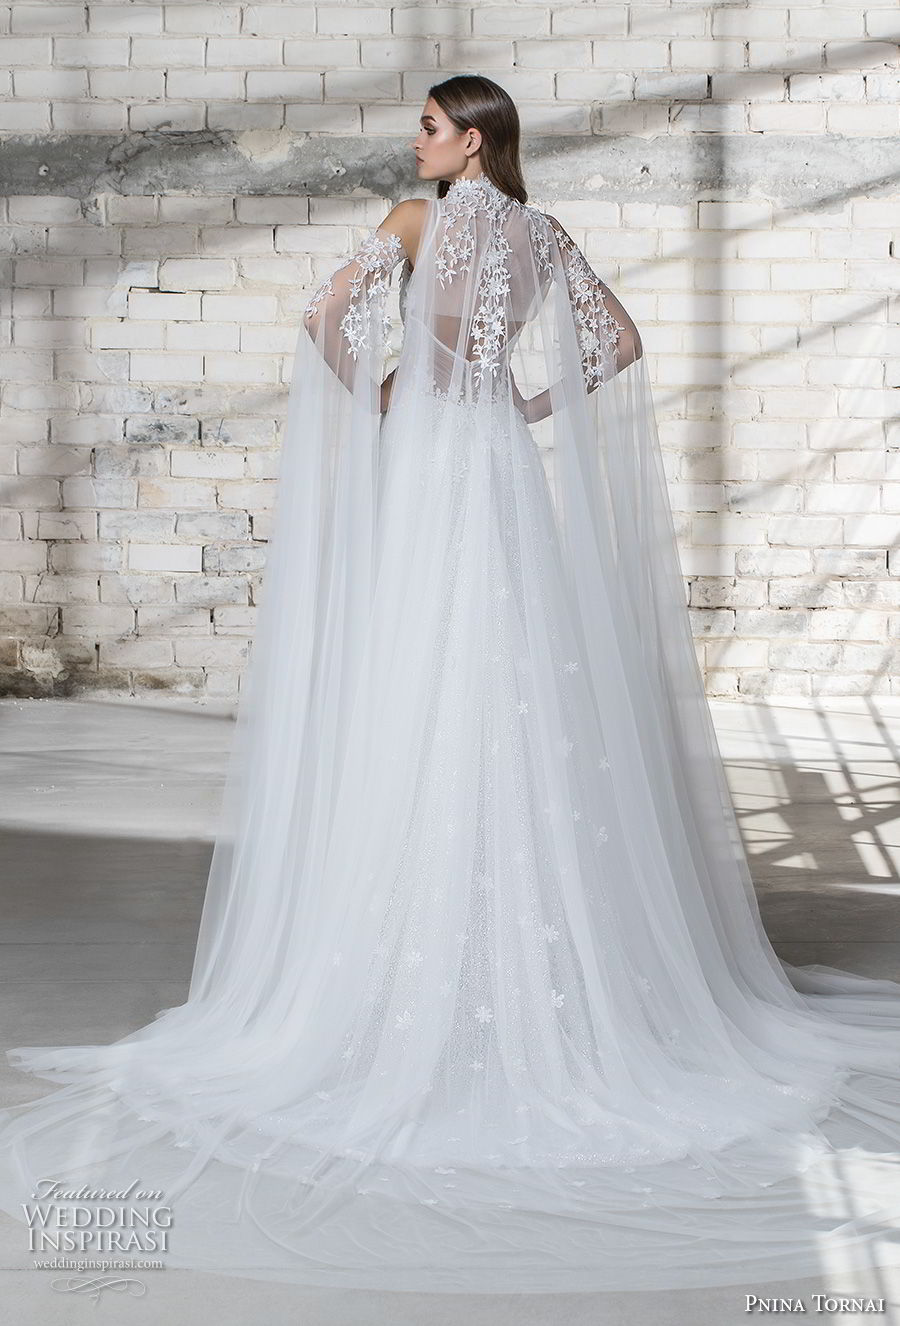 pnina tornai 2019 love bridal cold shoulder illusion high neck deep sweetheart neckline heavily embellished bodice romantic princess a line wedding dress sheer lace back chapel train (6) bv